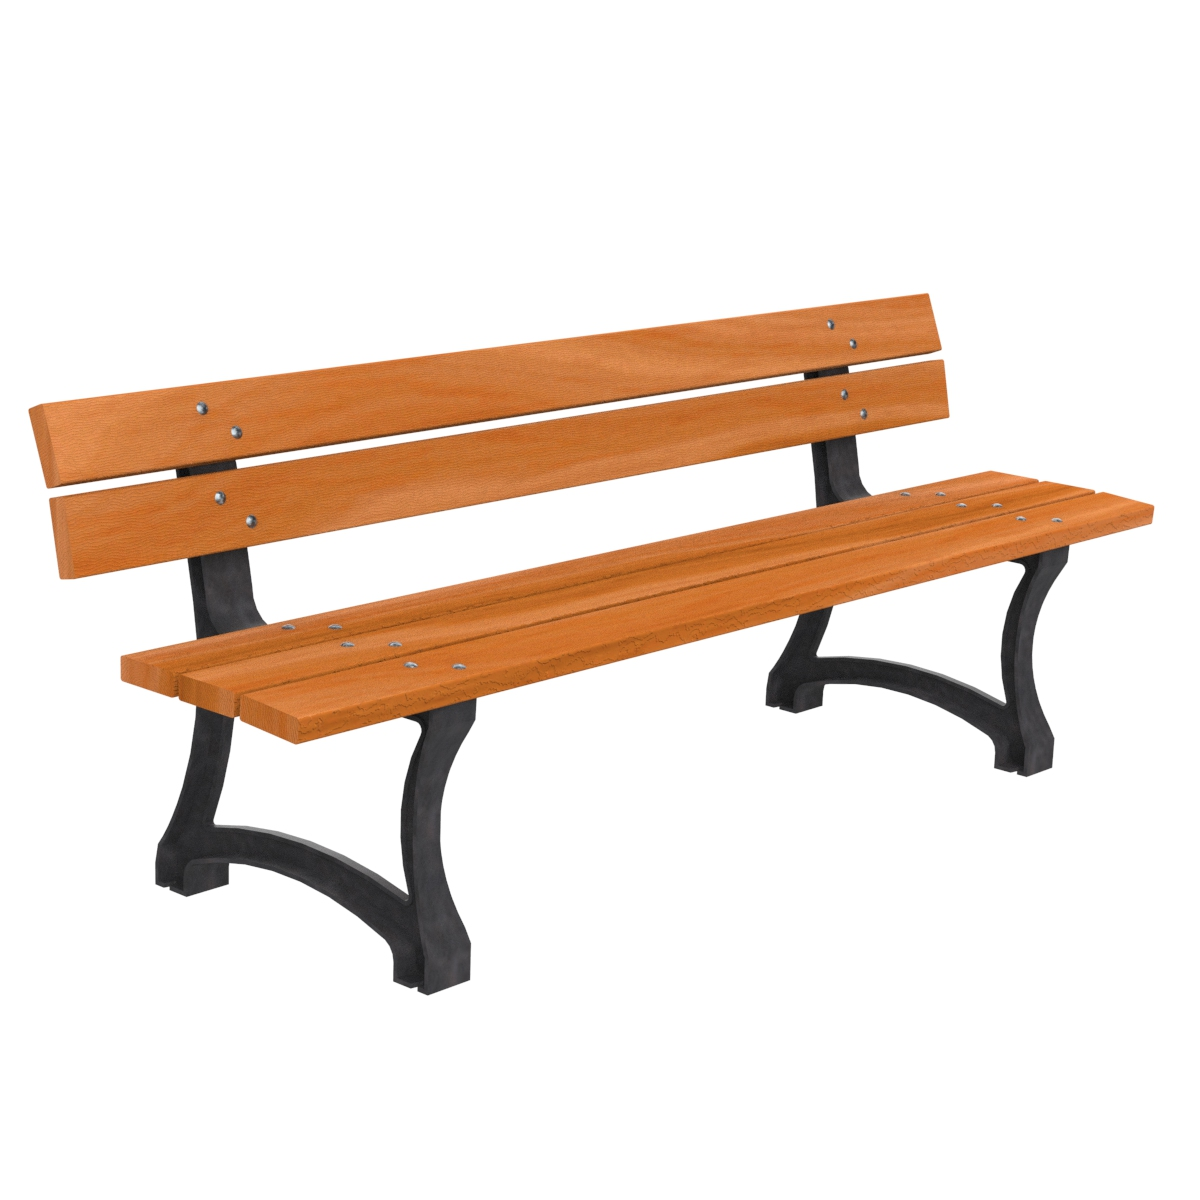 Perpignan Wood Bench furniture urban element parks and gardens